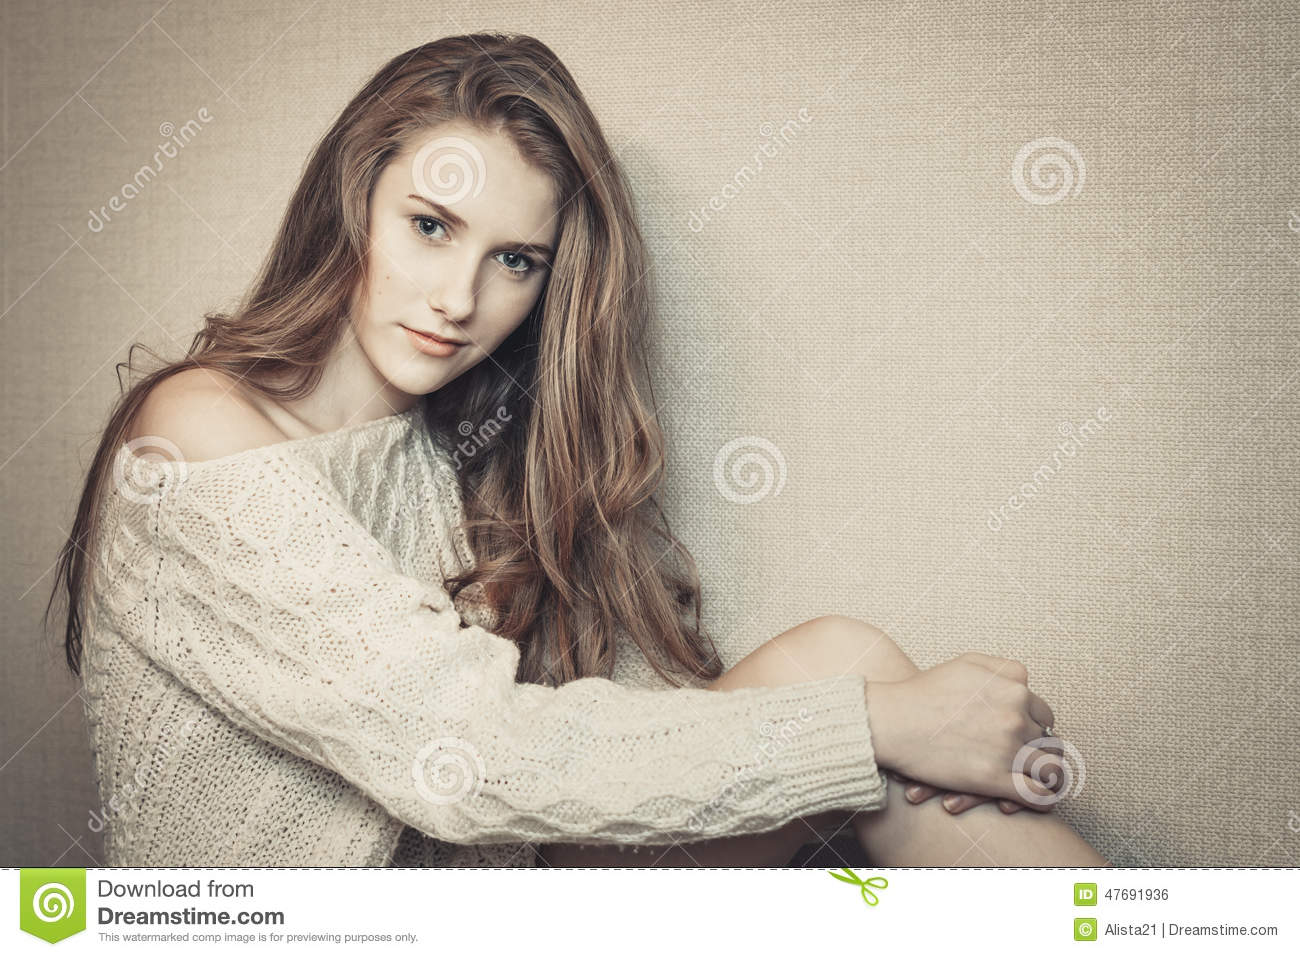 young beautiful girl with long curly hair sitting and posing in